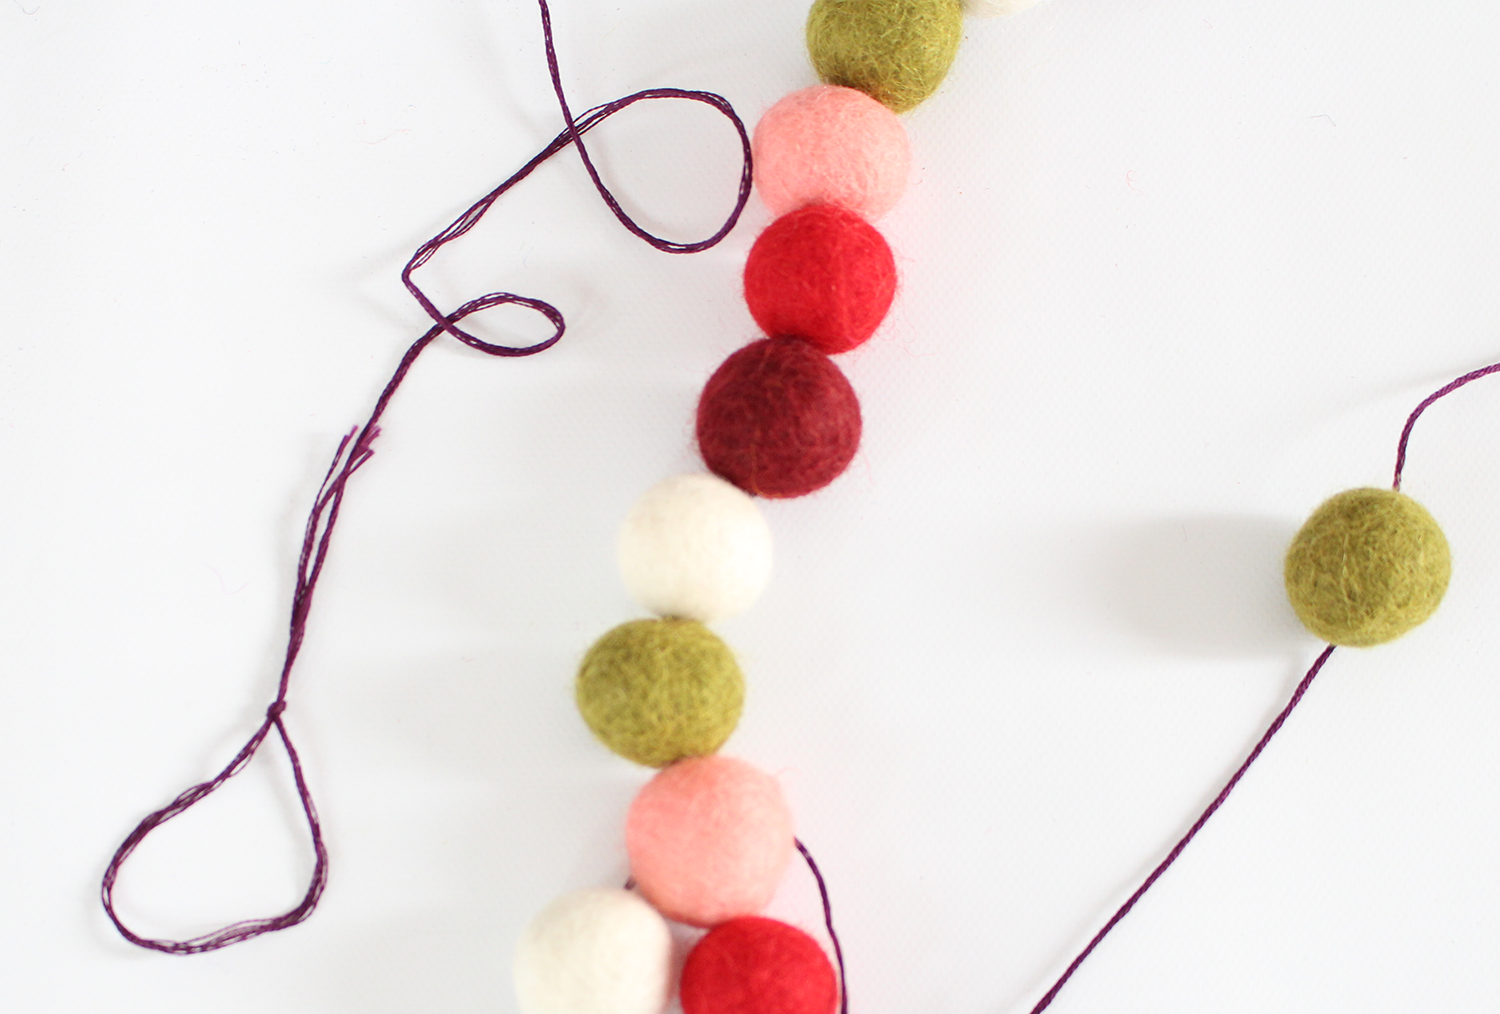 DIY felt ball garlands are easy to make for your holiday mantel decorating